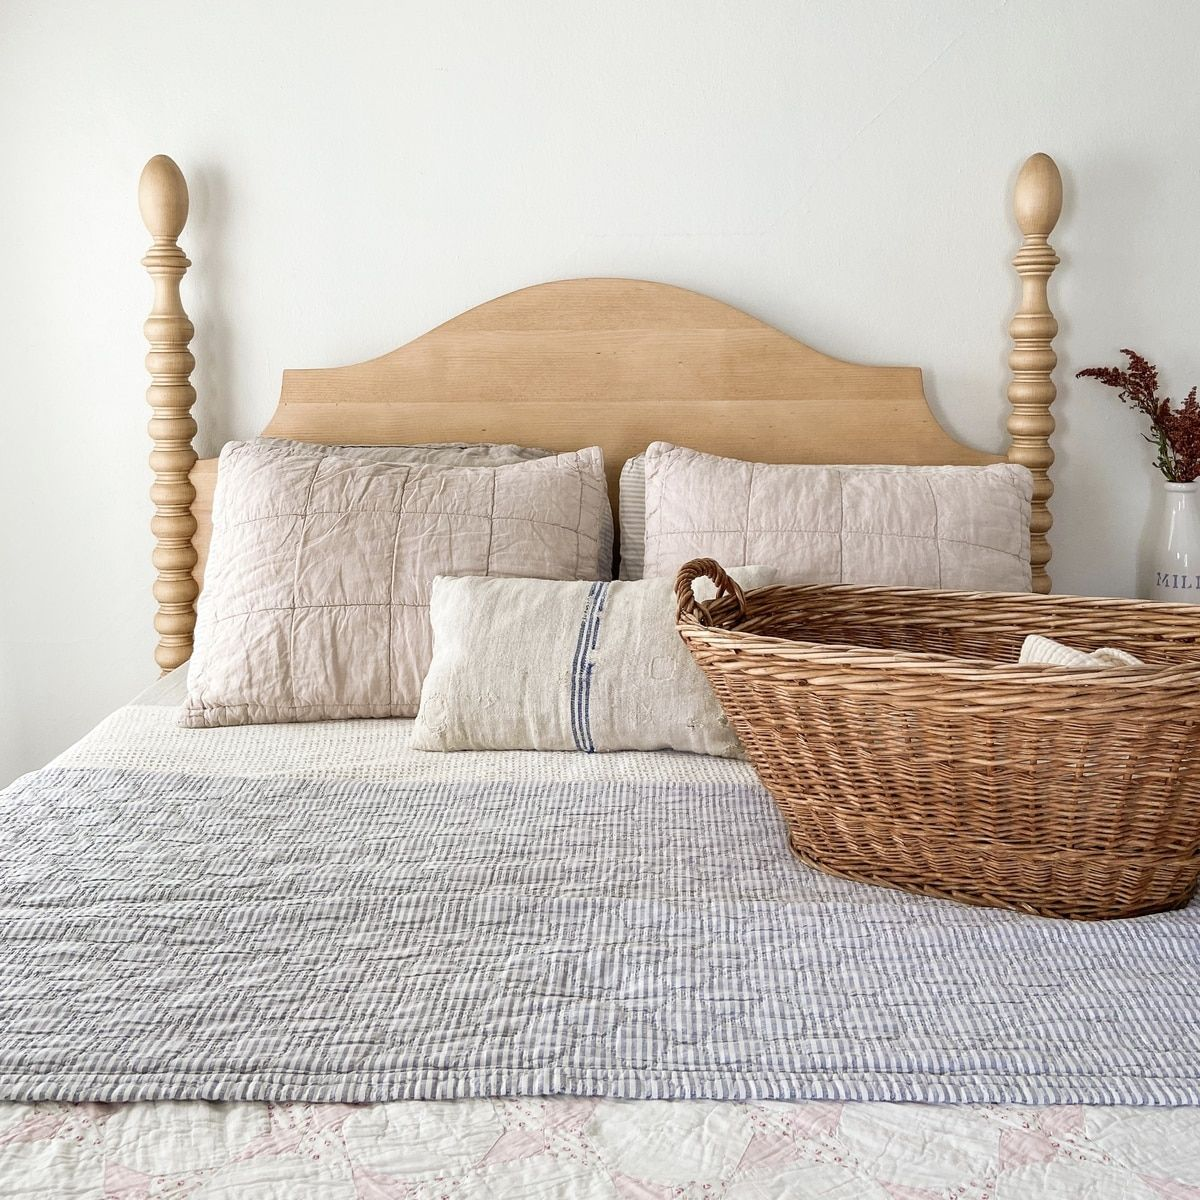 French Farm Spindle Headboard in 2020 Spindle bed, Bed